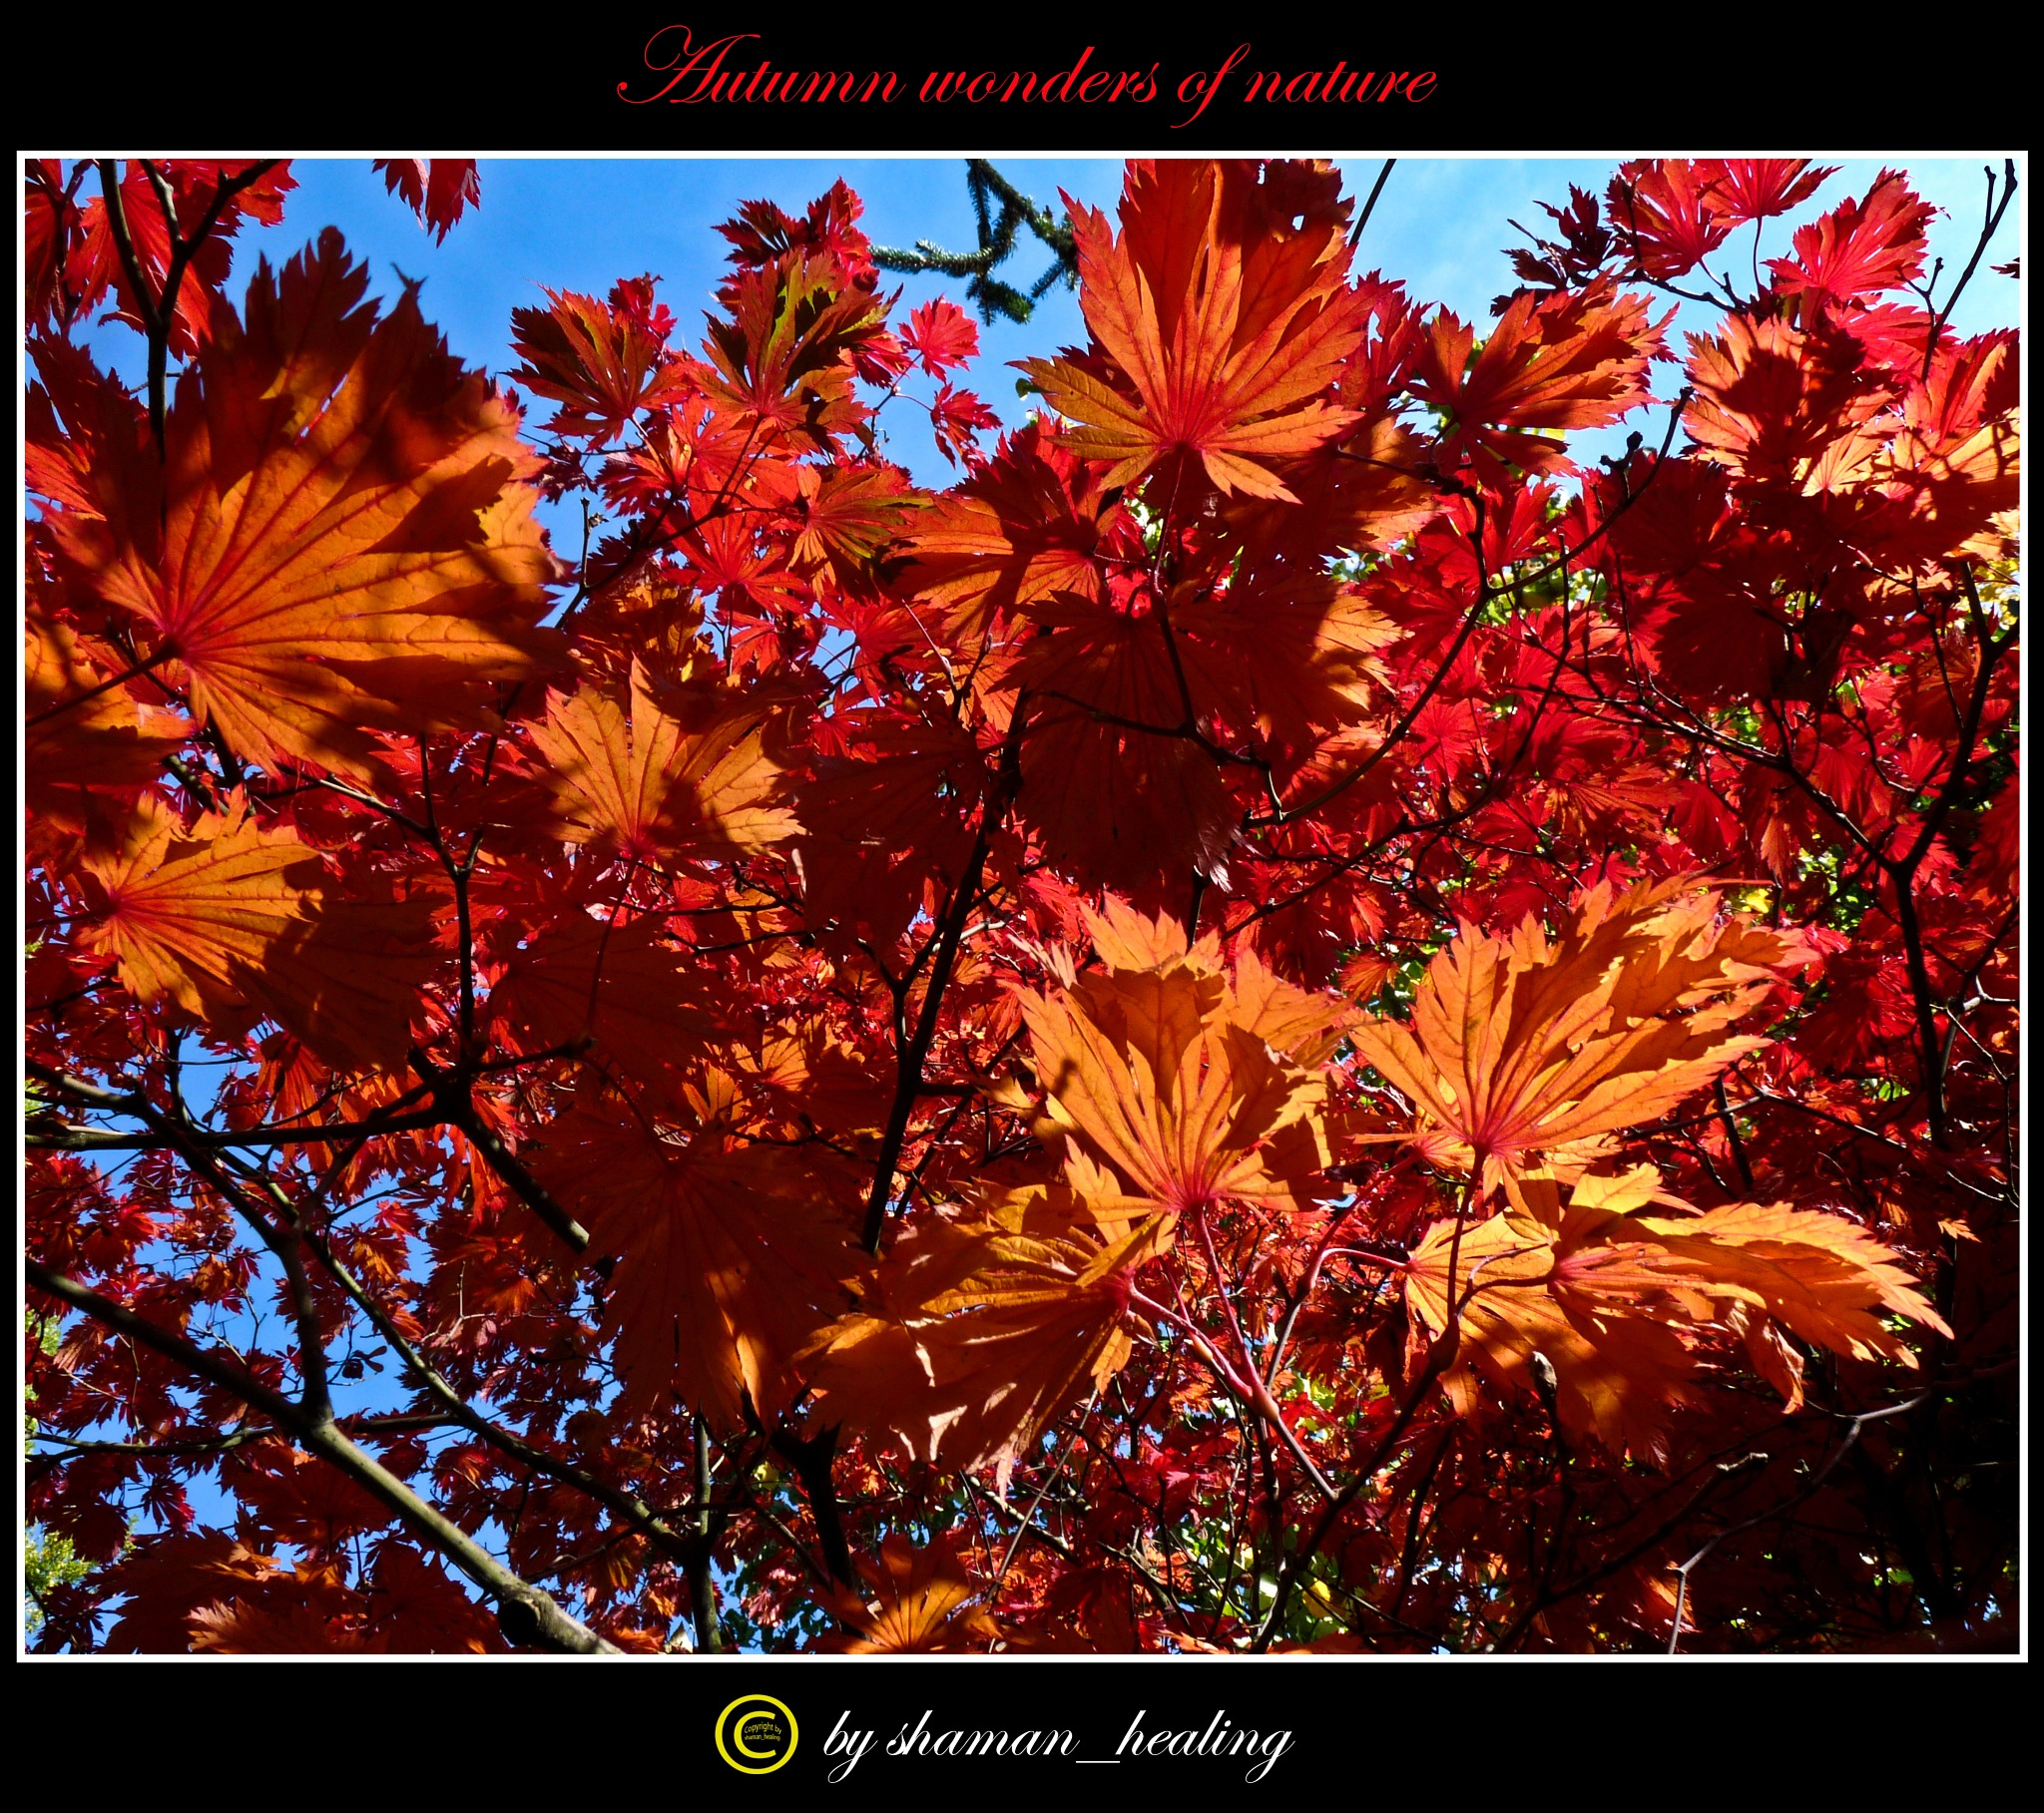 Herbstfeuer by shamanhealingflickr